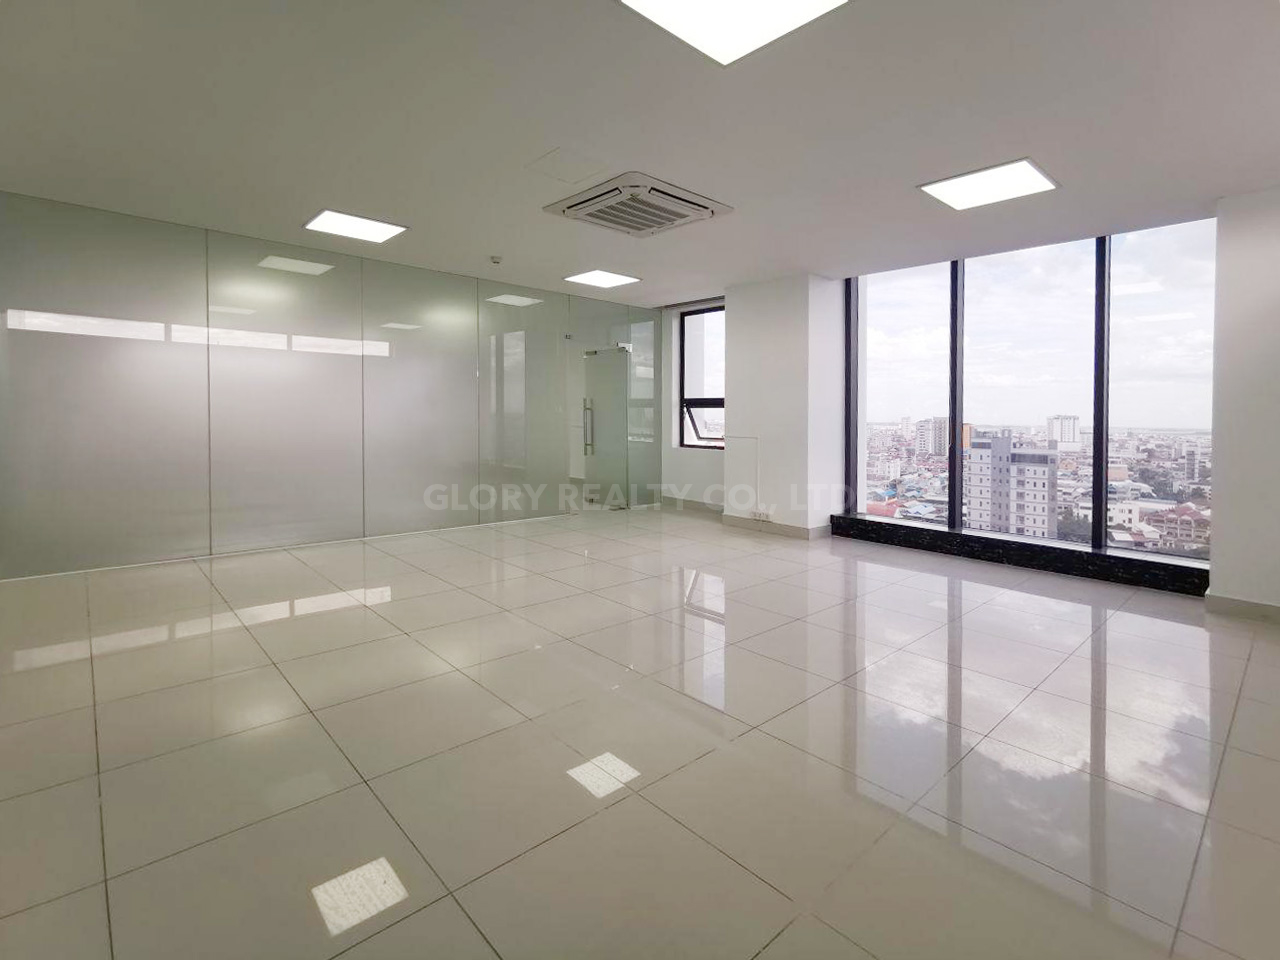 138 Sqm office space for rent in Sangkat Toul Tumpong 2